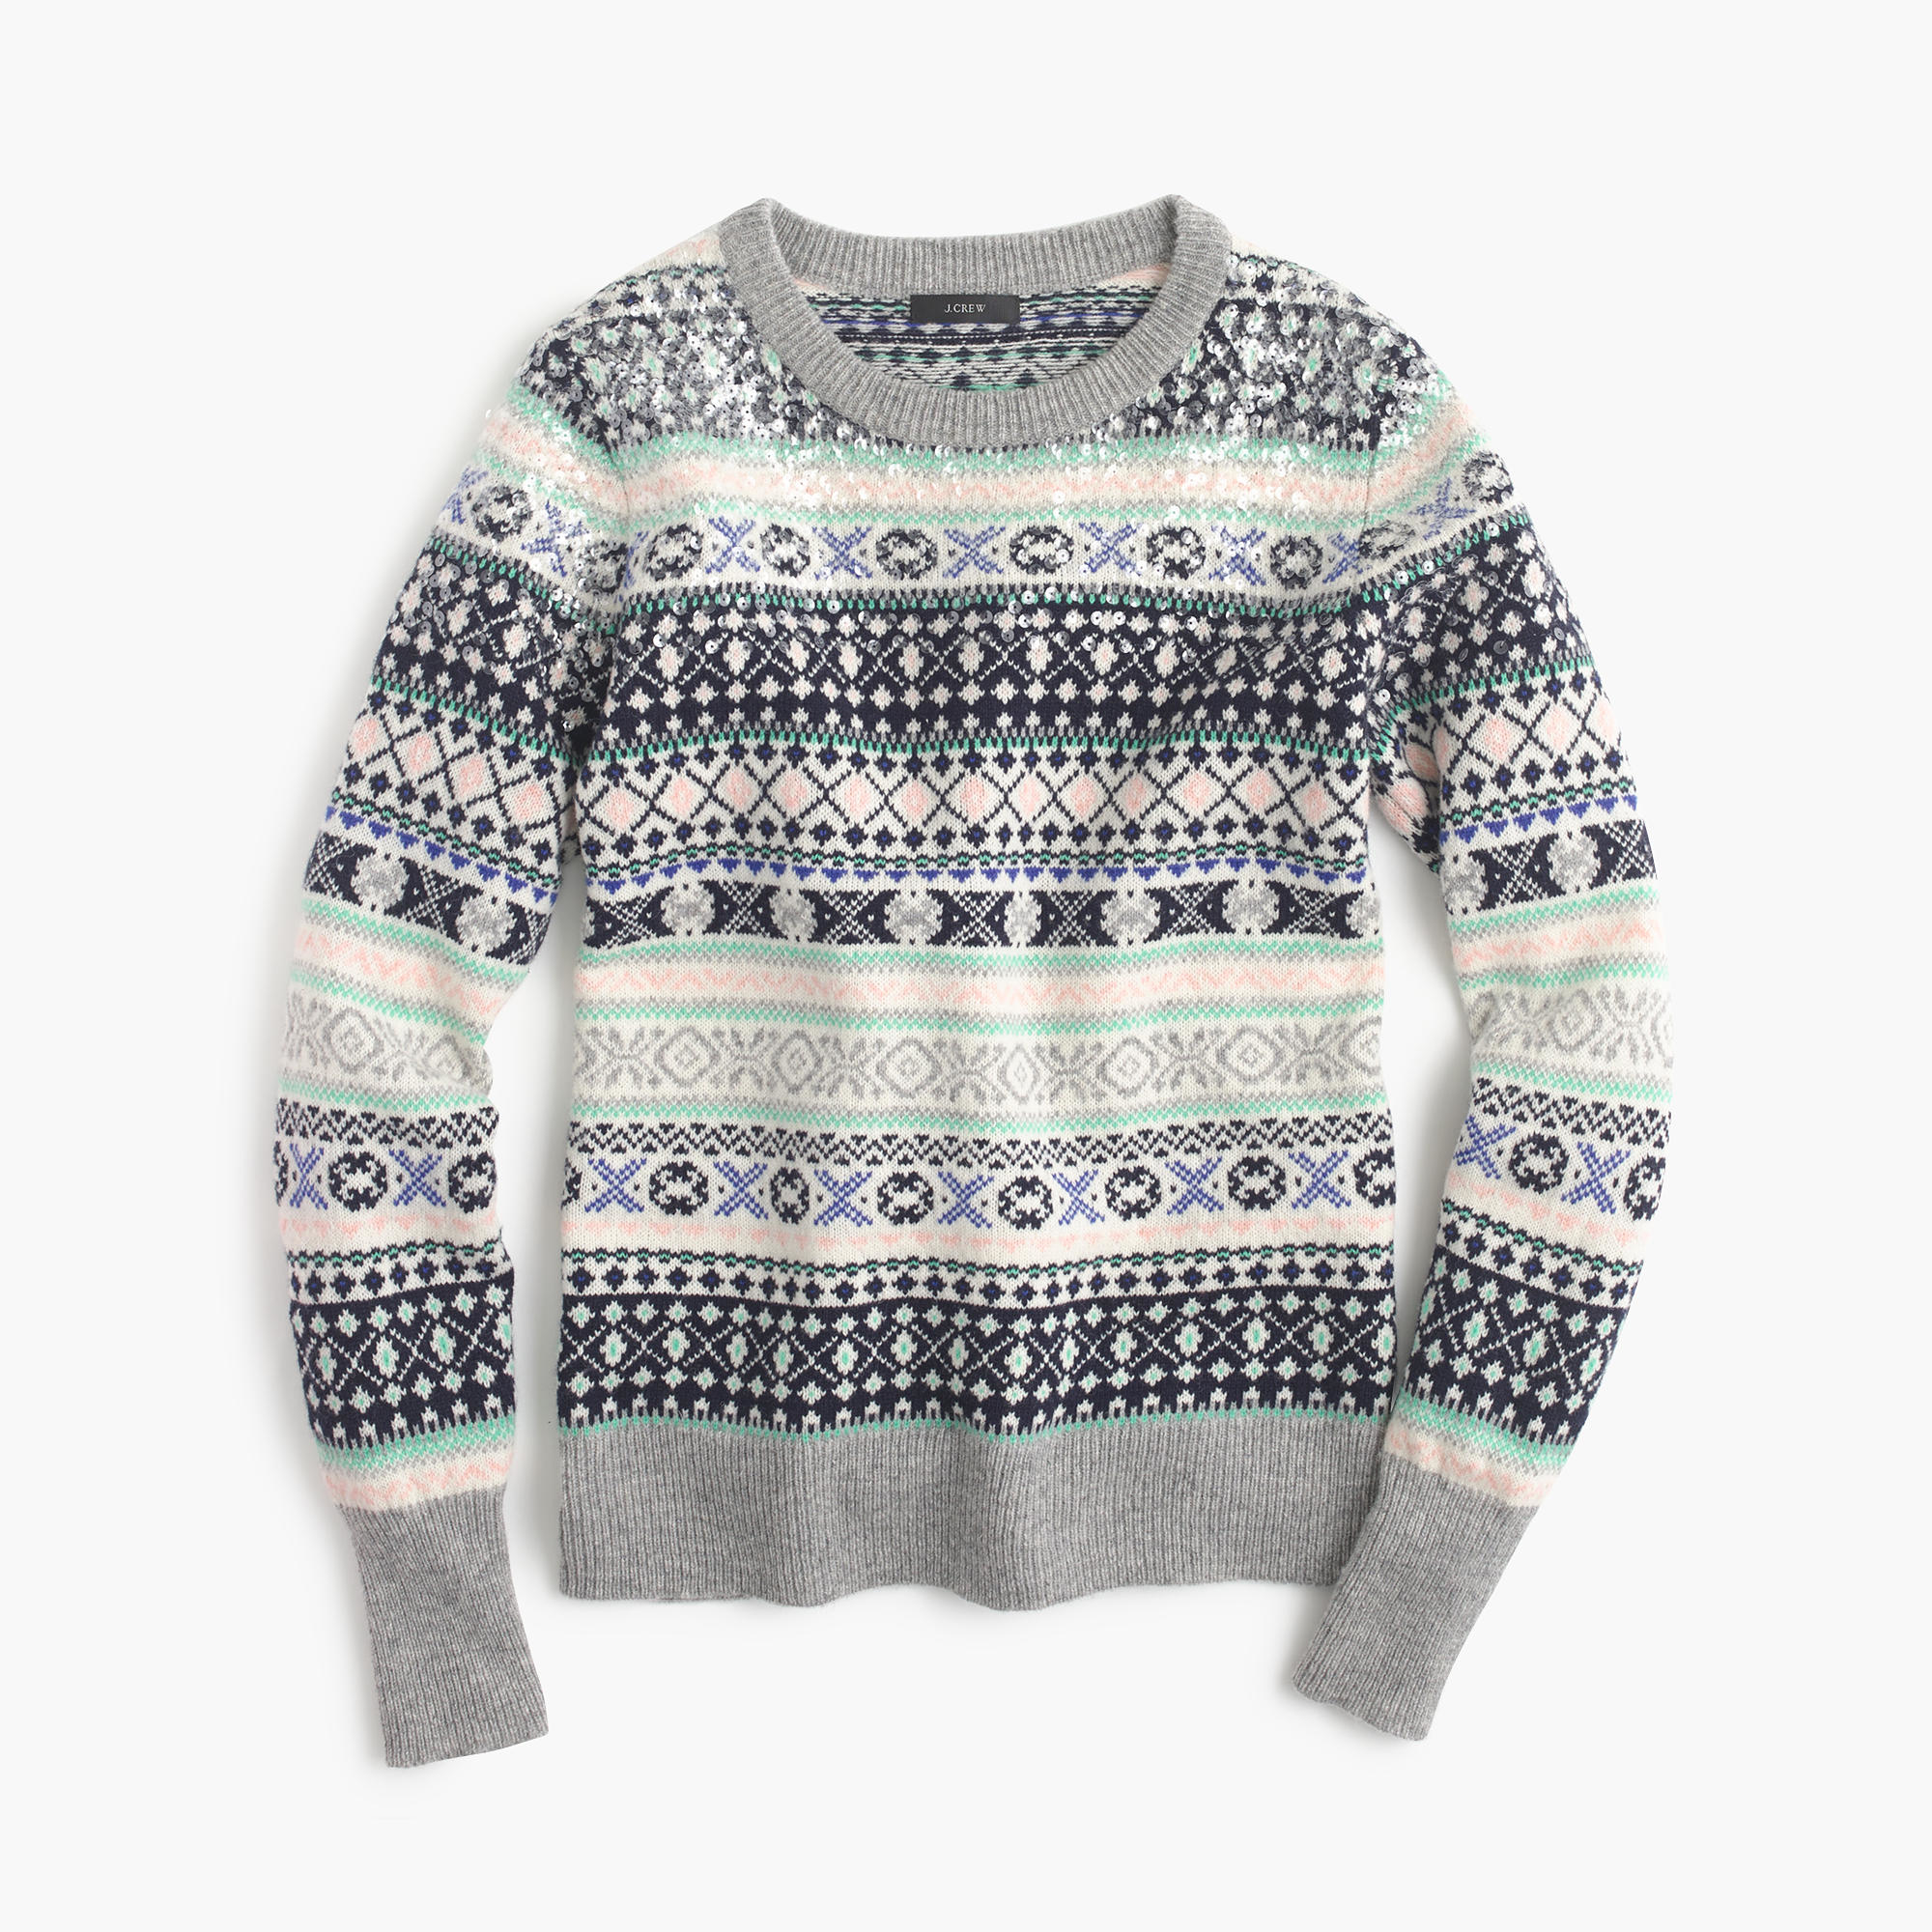 J.crew Petite Sequin Fair Isle Sweater in Gray | Lyst